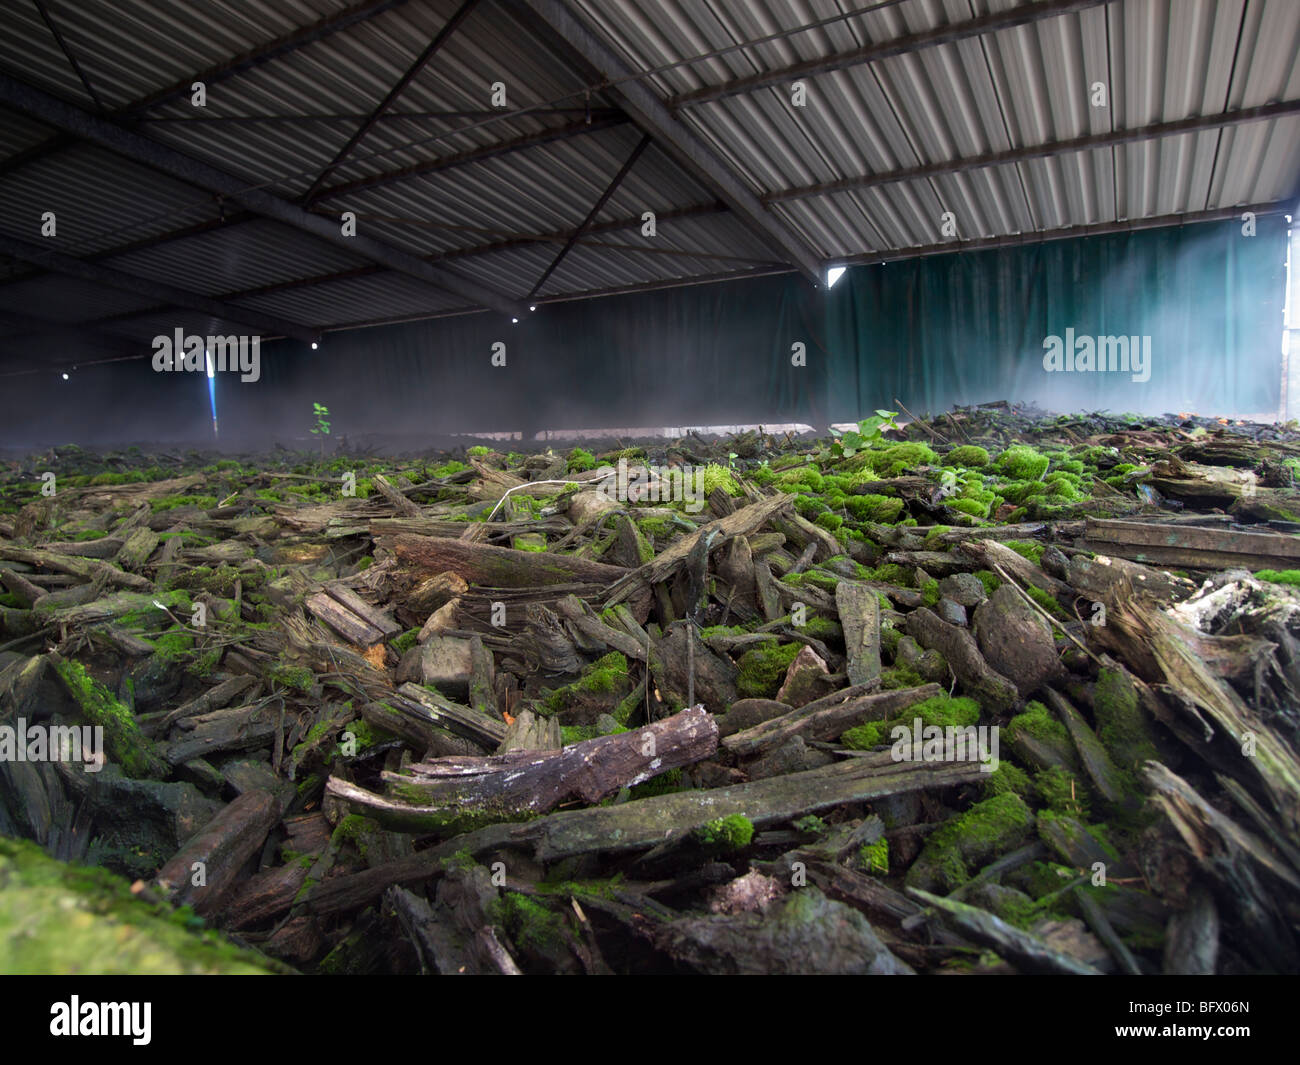 Biofilter at composting plant, Maastricht, the Netherlands